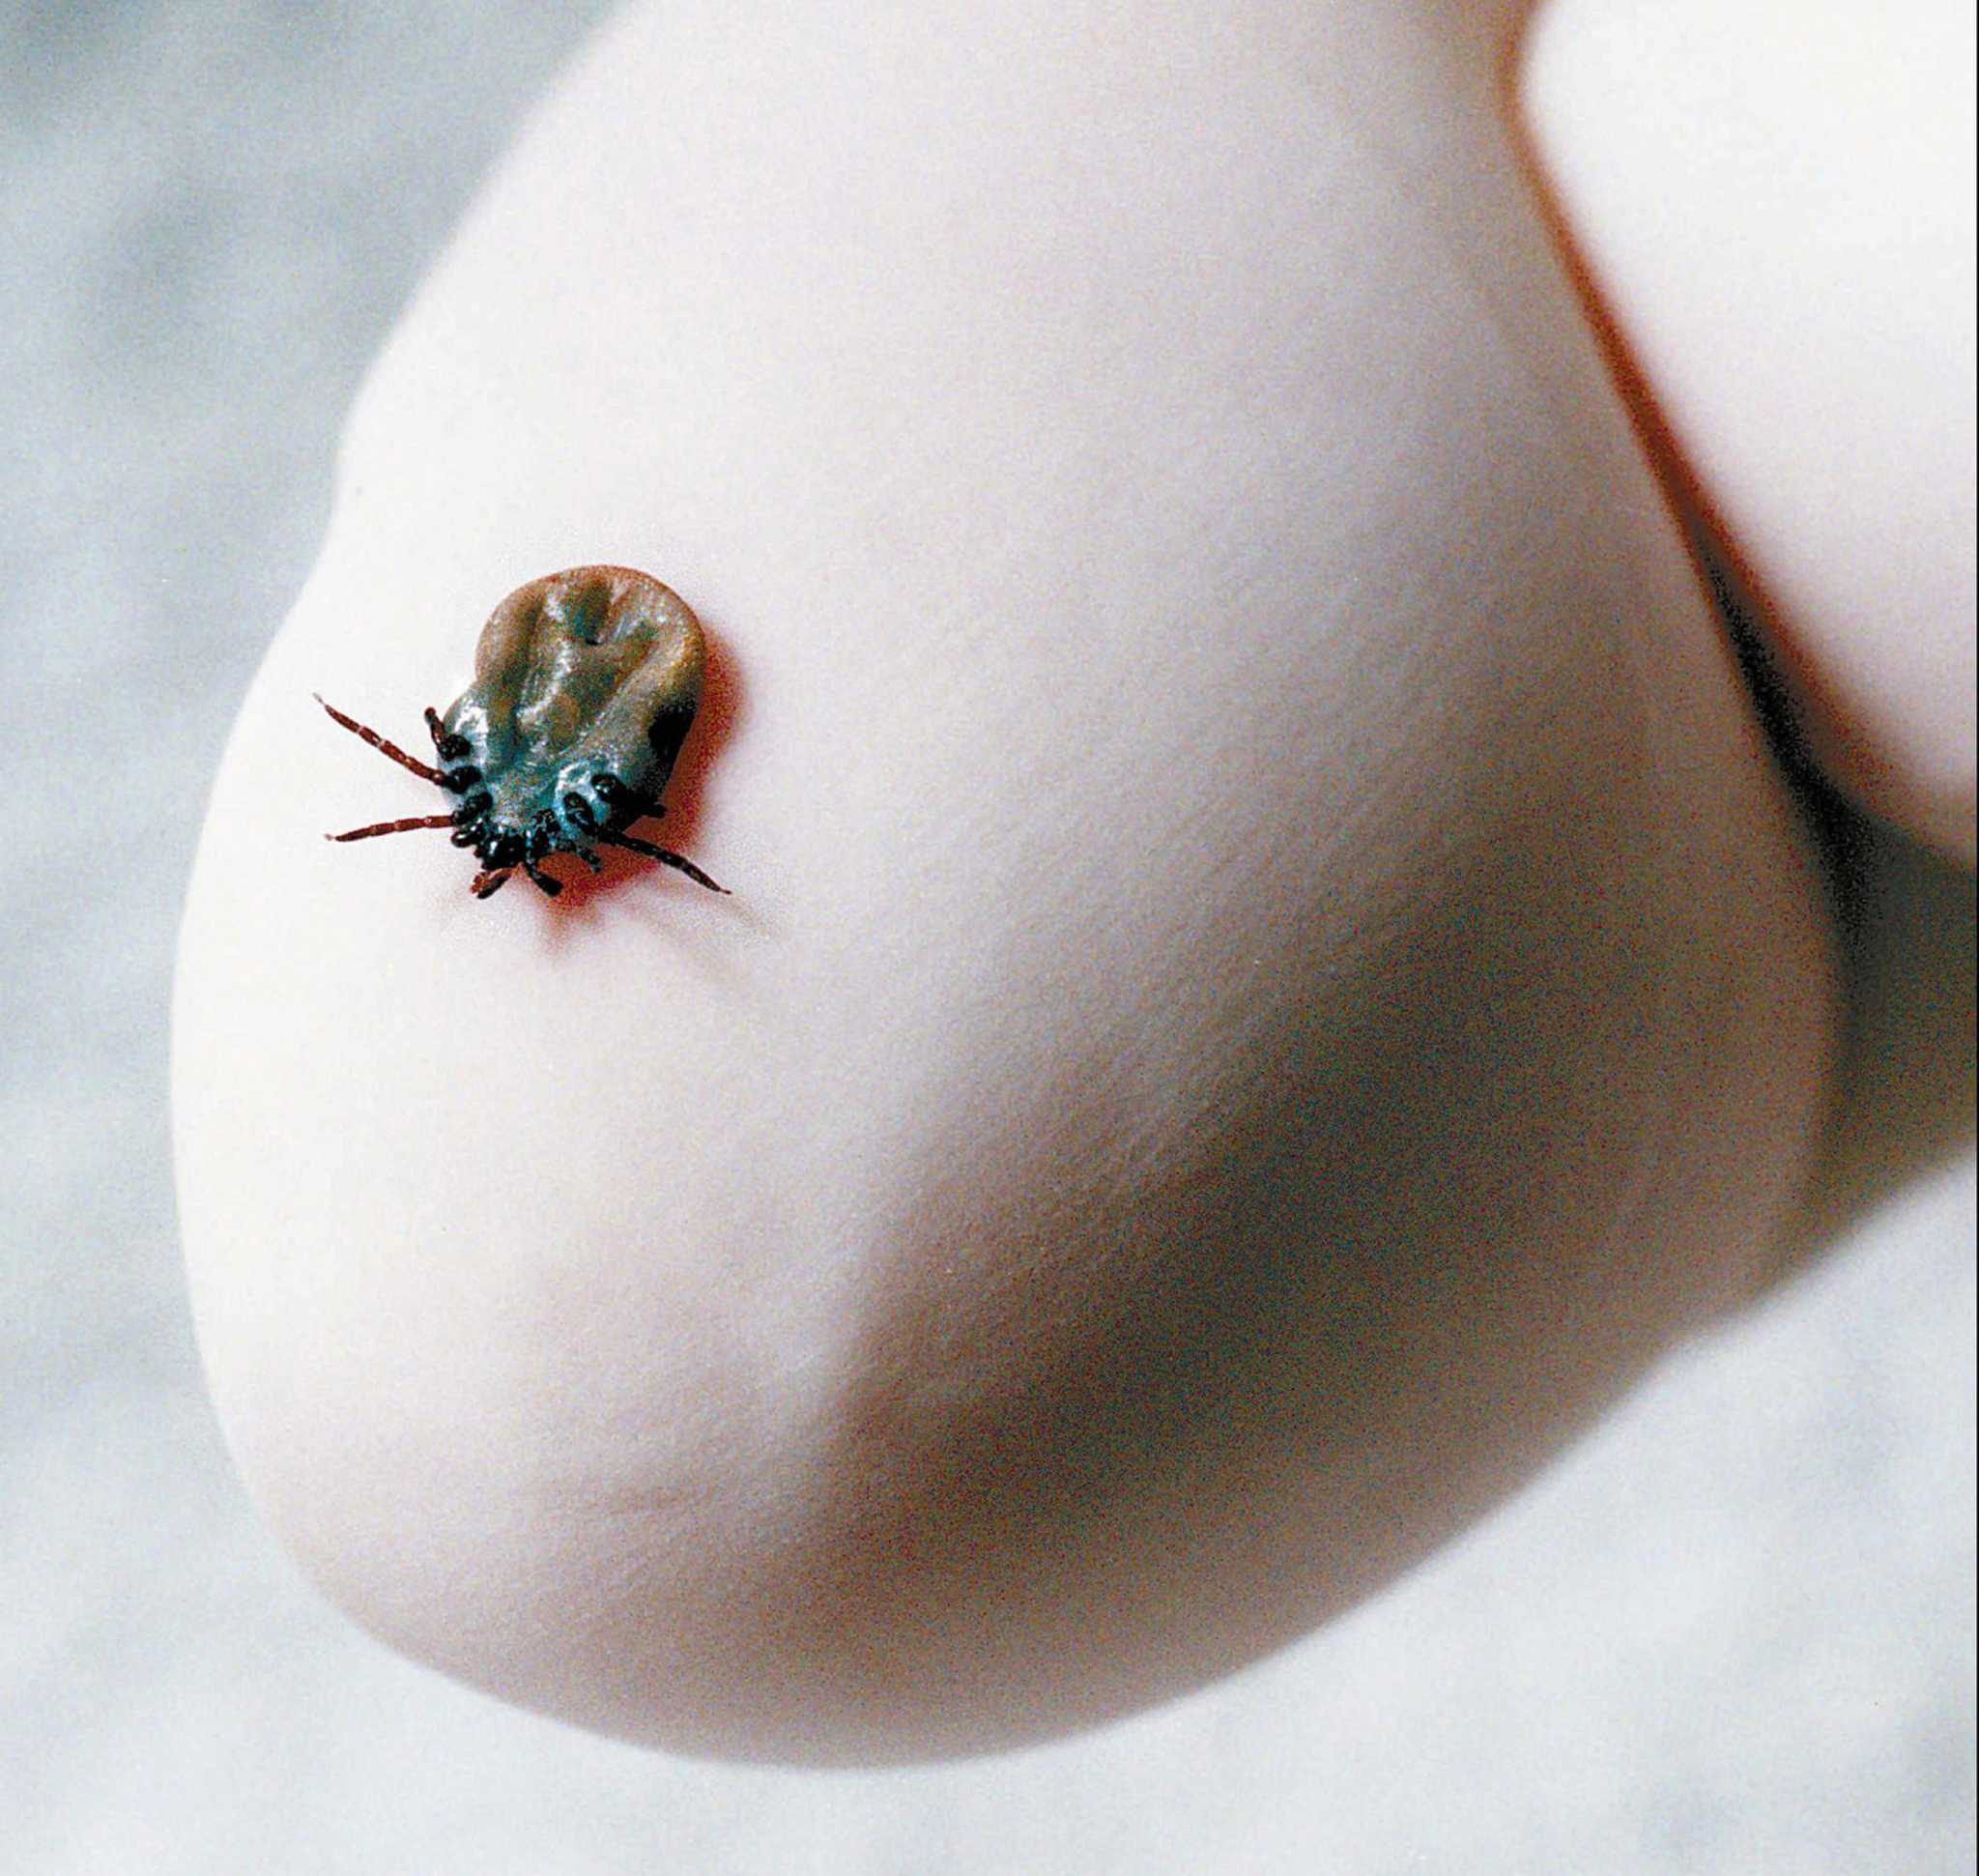 Greenwich residents urged to watch out for ticks - GreenwichTime